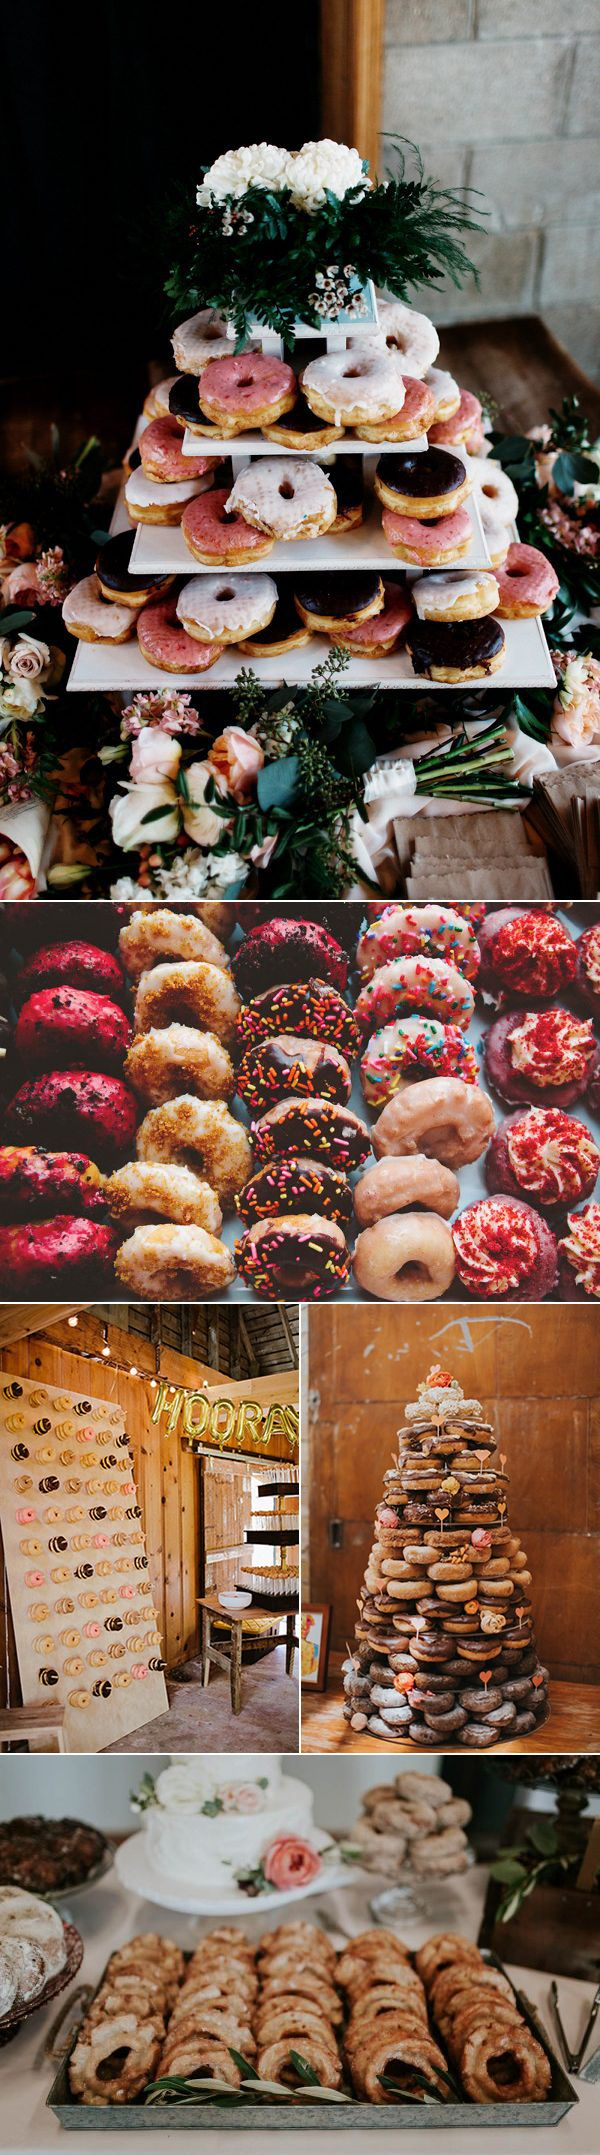 best 25 wedding foods ideas on pinterest kitchen tea parties